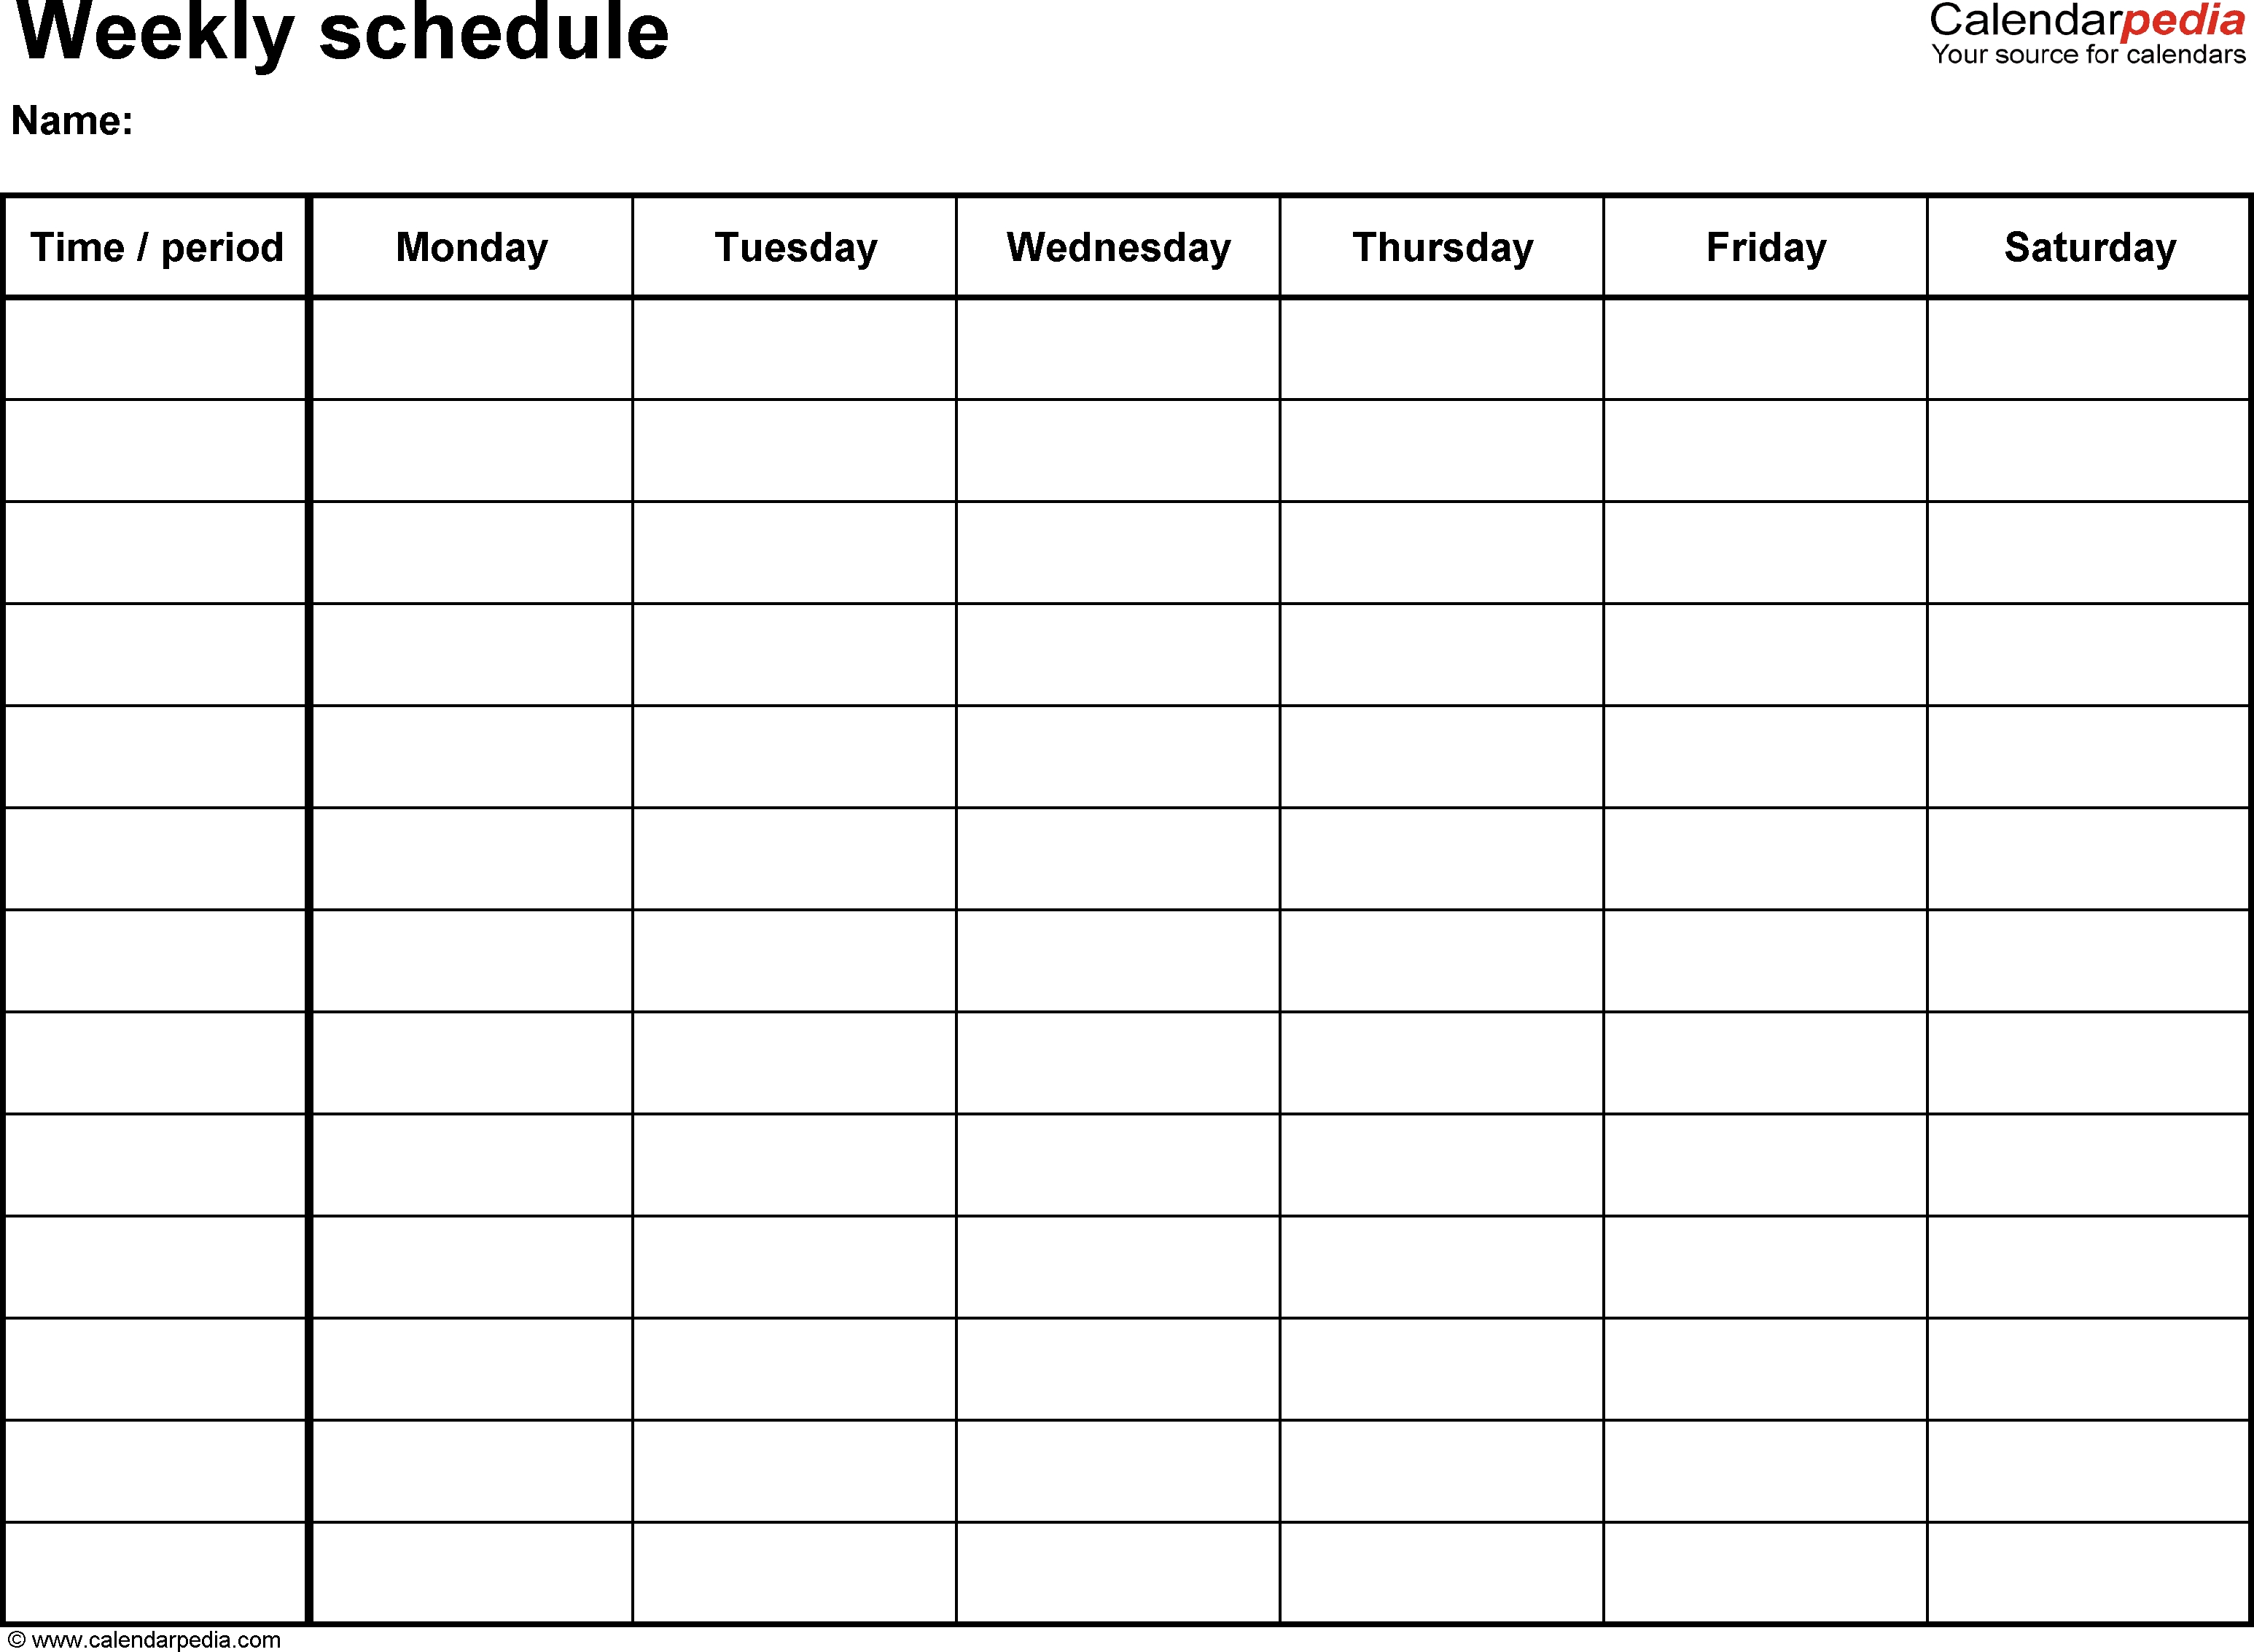 Free Weekly Schedule Templates For Word - 18 Templates pertaining to Monday To Friday Timetable Template